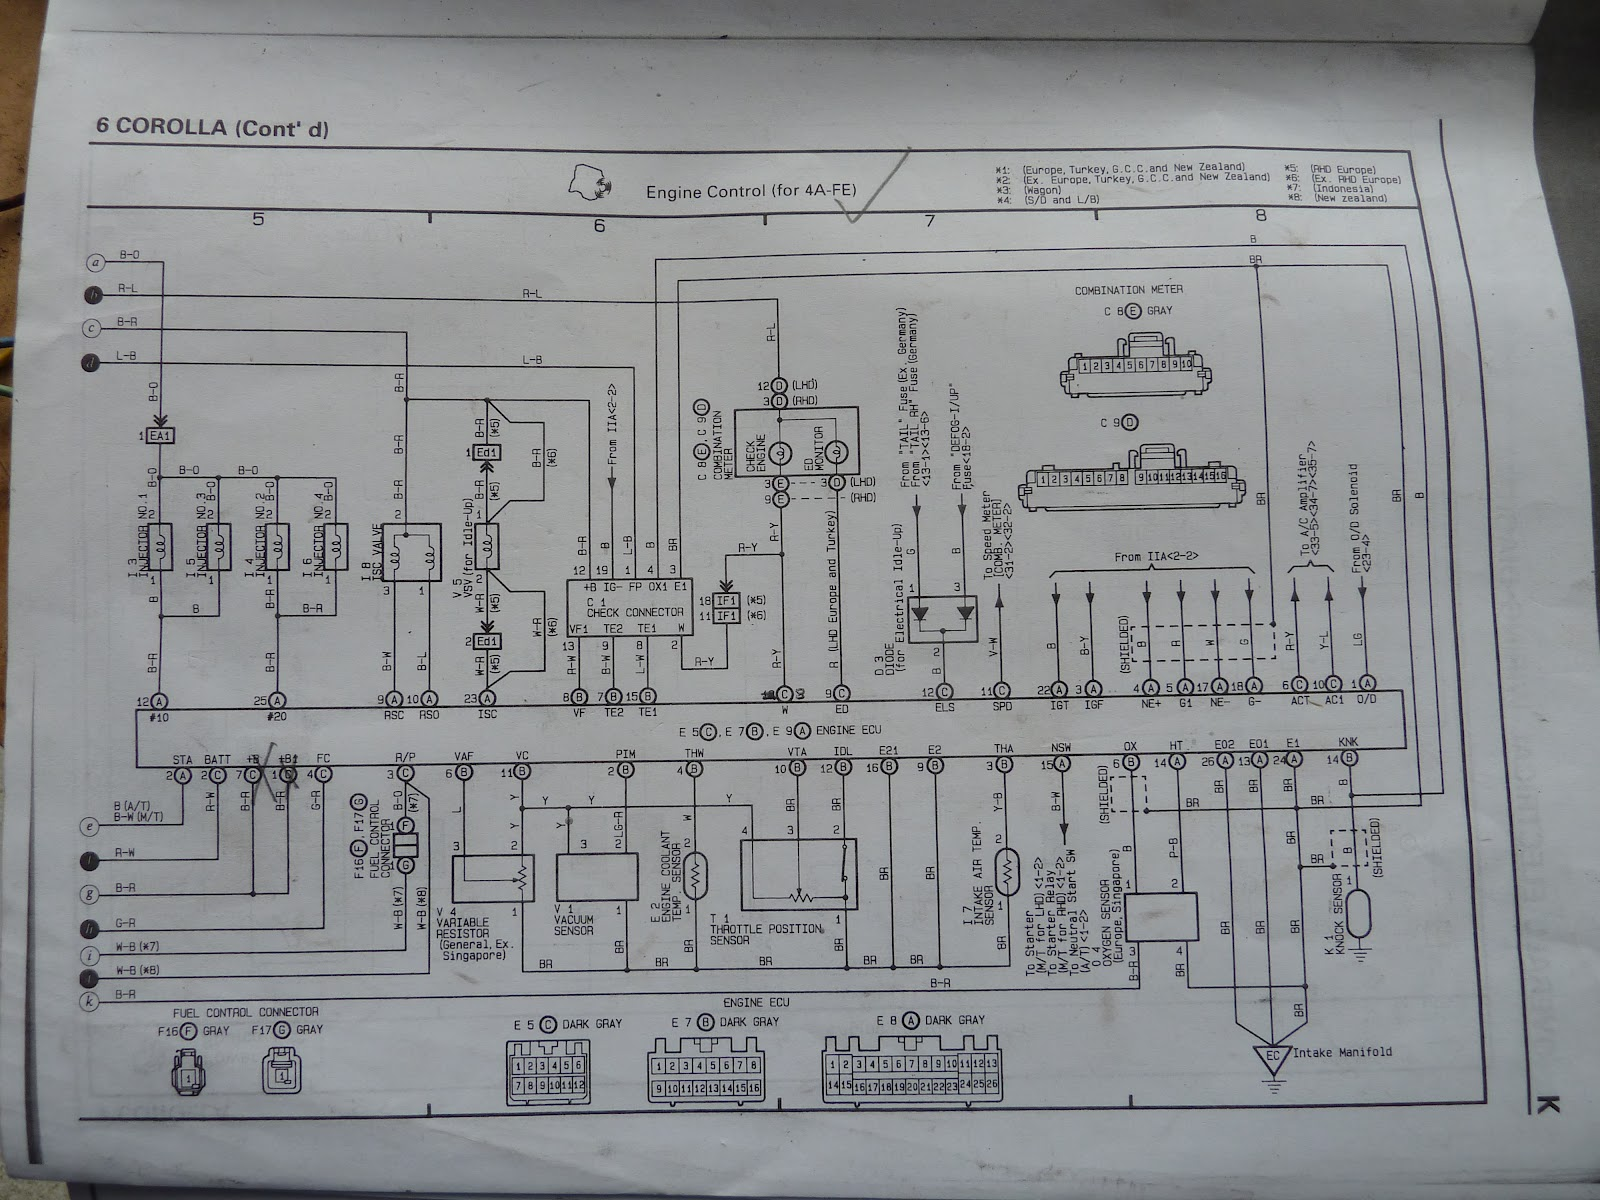 Feng li wiring diagram explanation for 4a fe which is the right one for the project asfbconference2016 Images